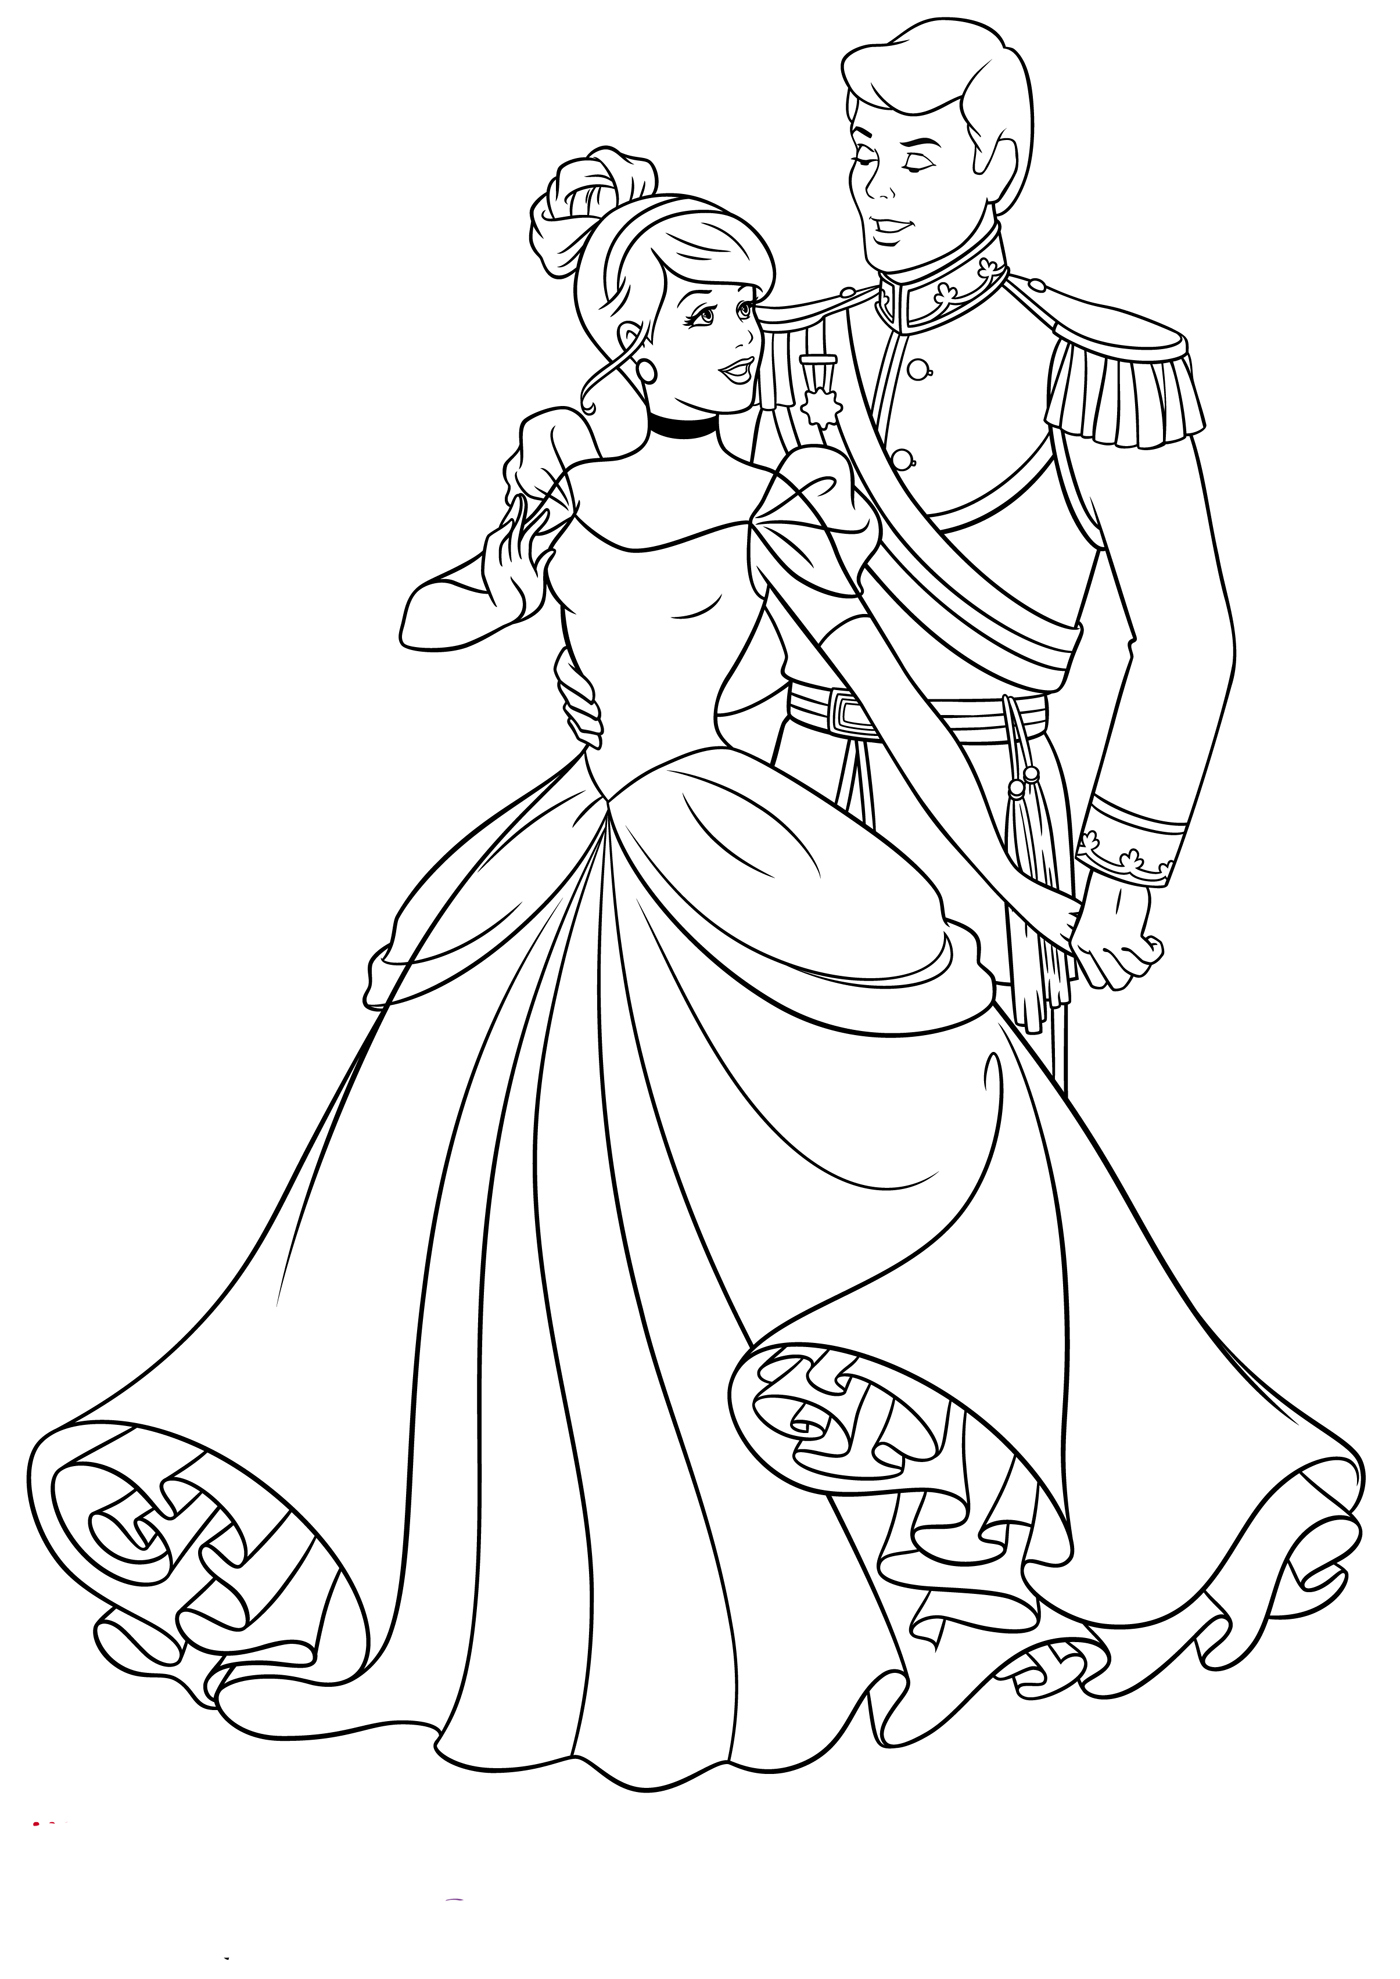 coloring pages of cinderella print download impressive cinderella coloring pages coloring pages of cinderella